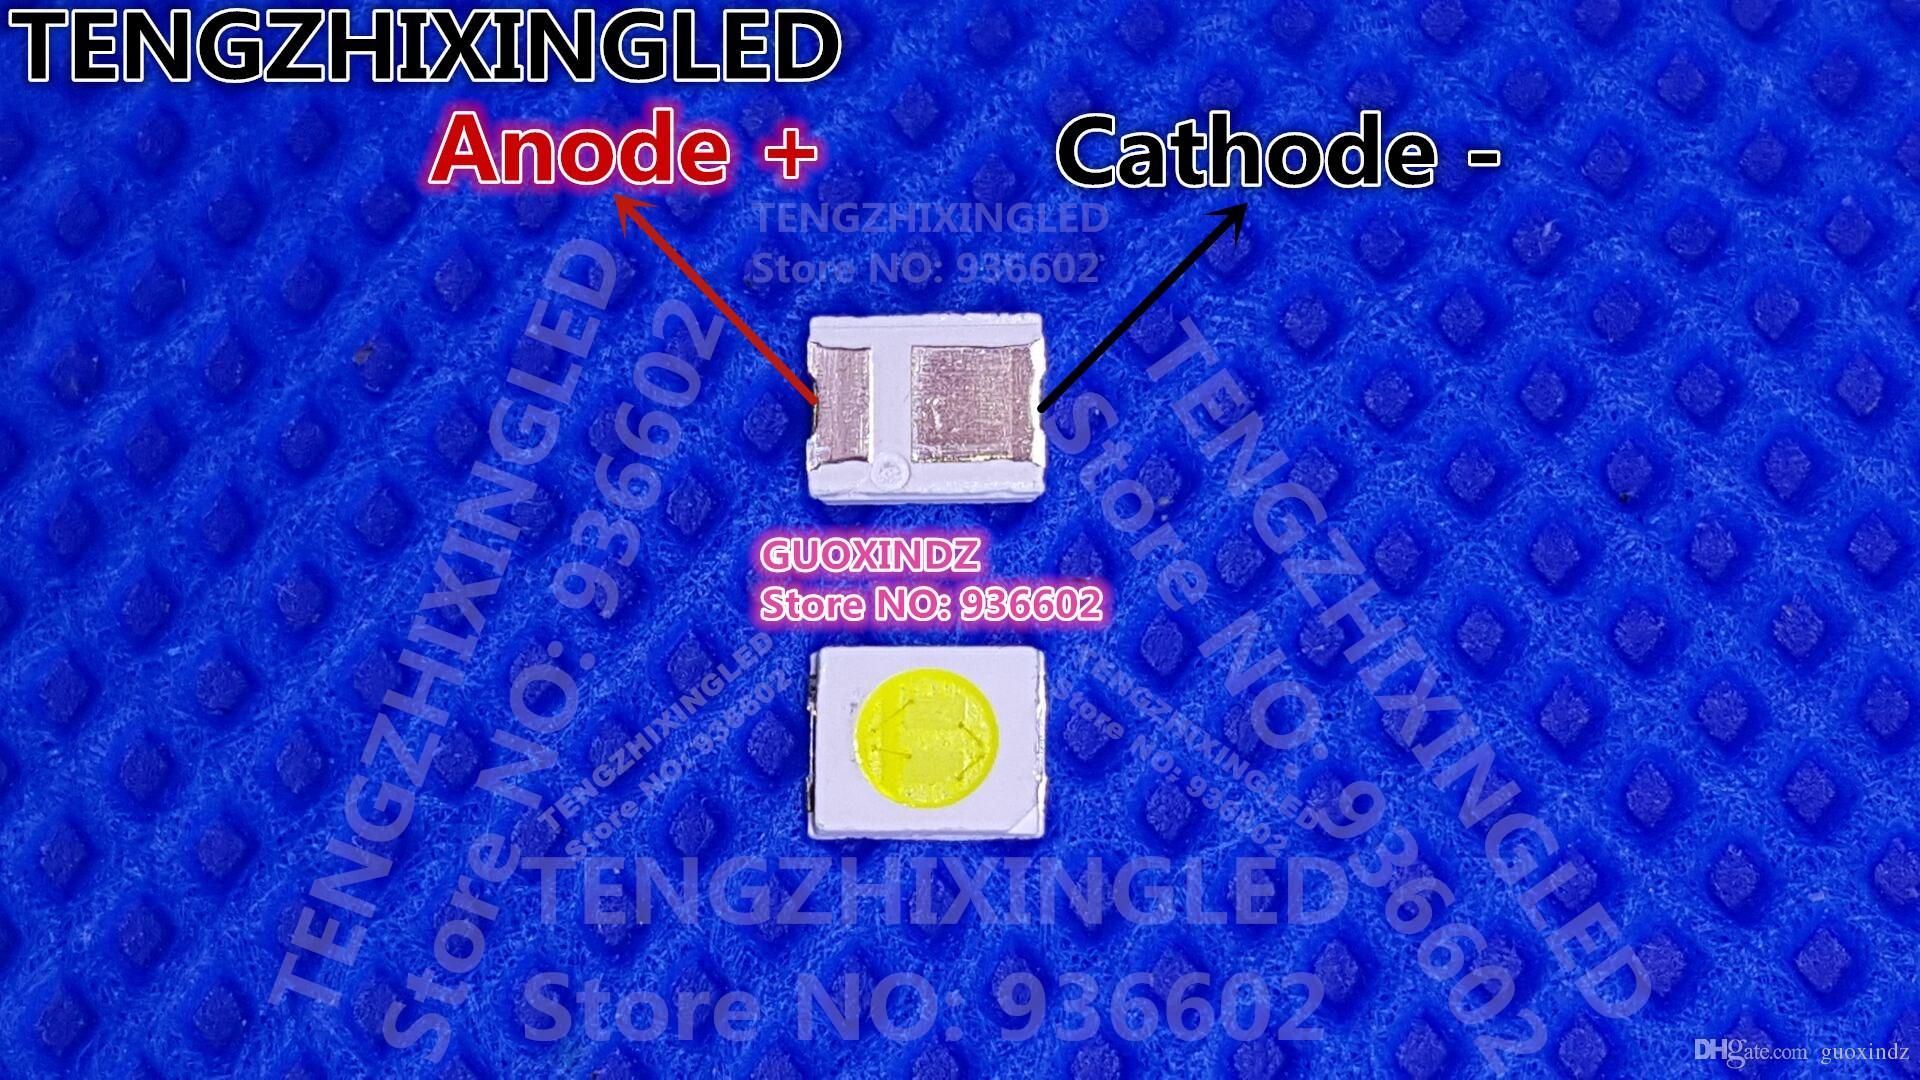 HONGLI TRONIC DOUBLE CHIPS LED Backlight 1210 3528 2835 1W 3V 100LM Cool White LCD Backlight for TV HL A 3528D49W 2 S1 08 PCT RM LED Backlight 3528